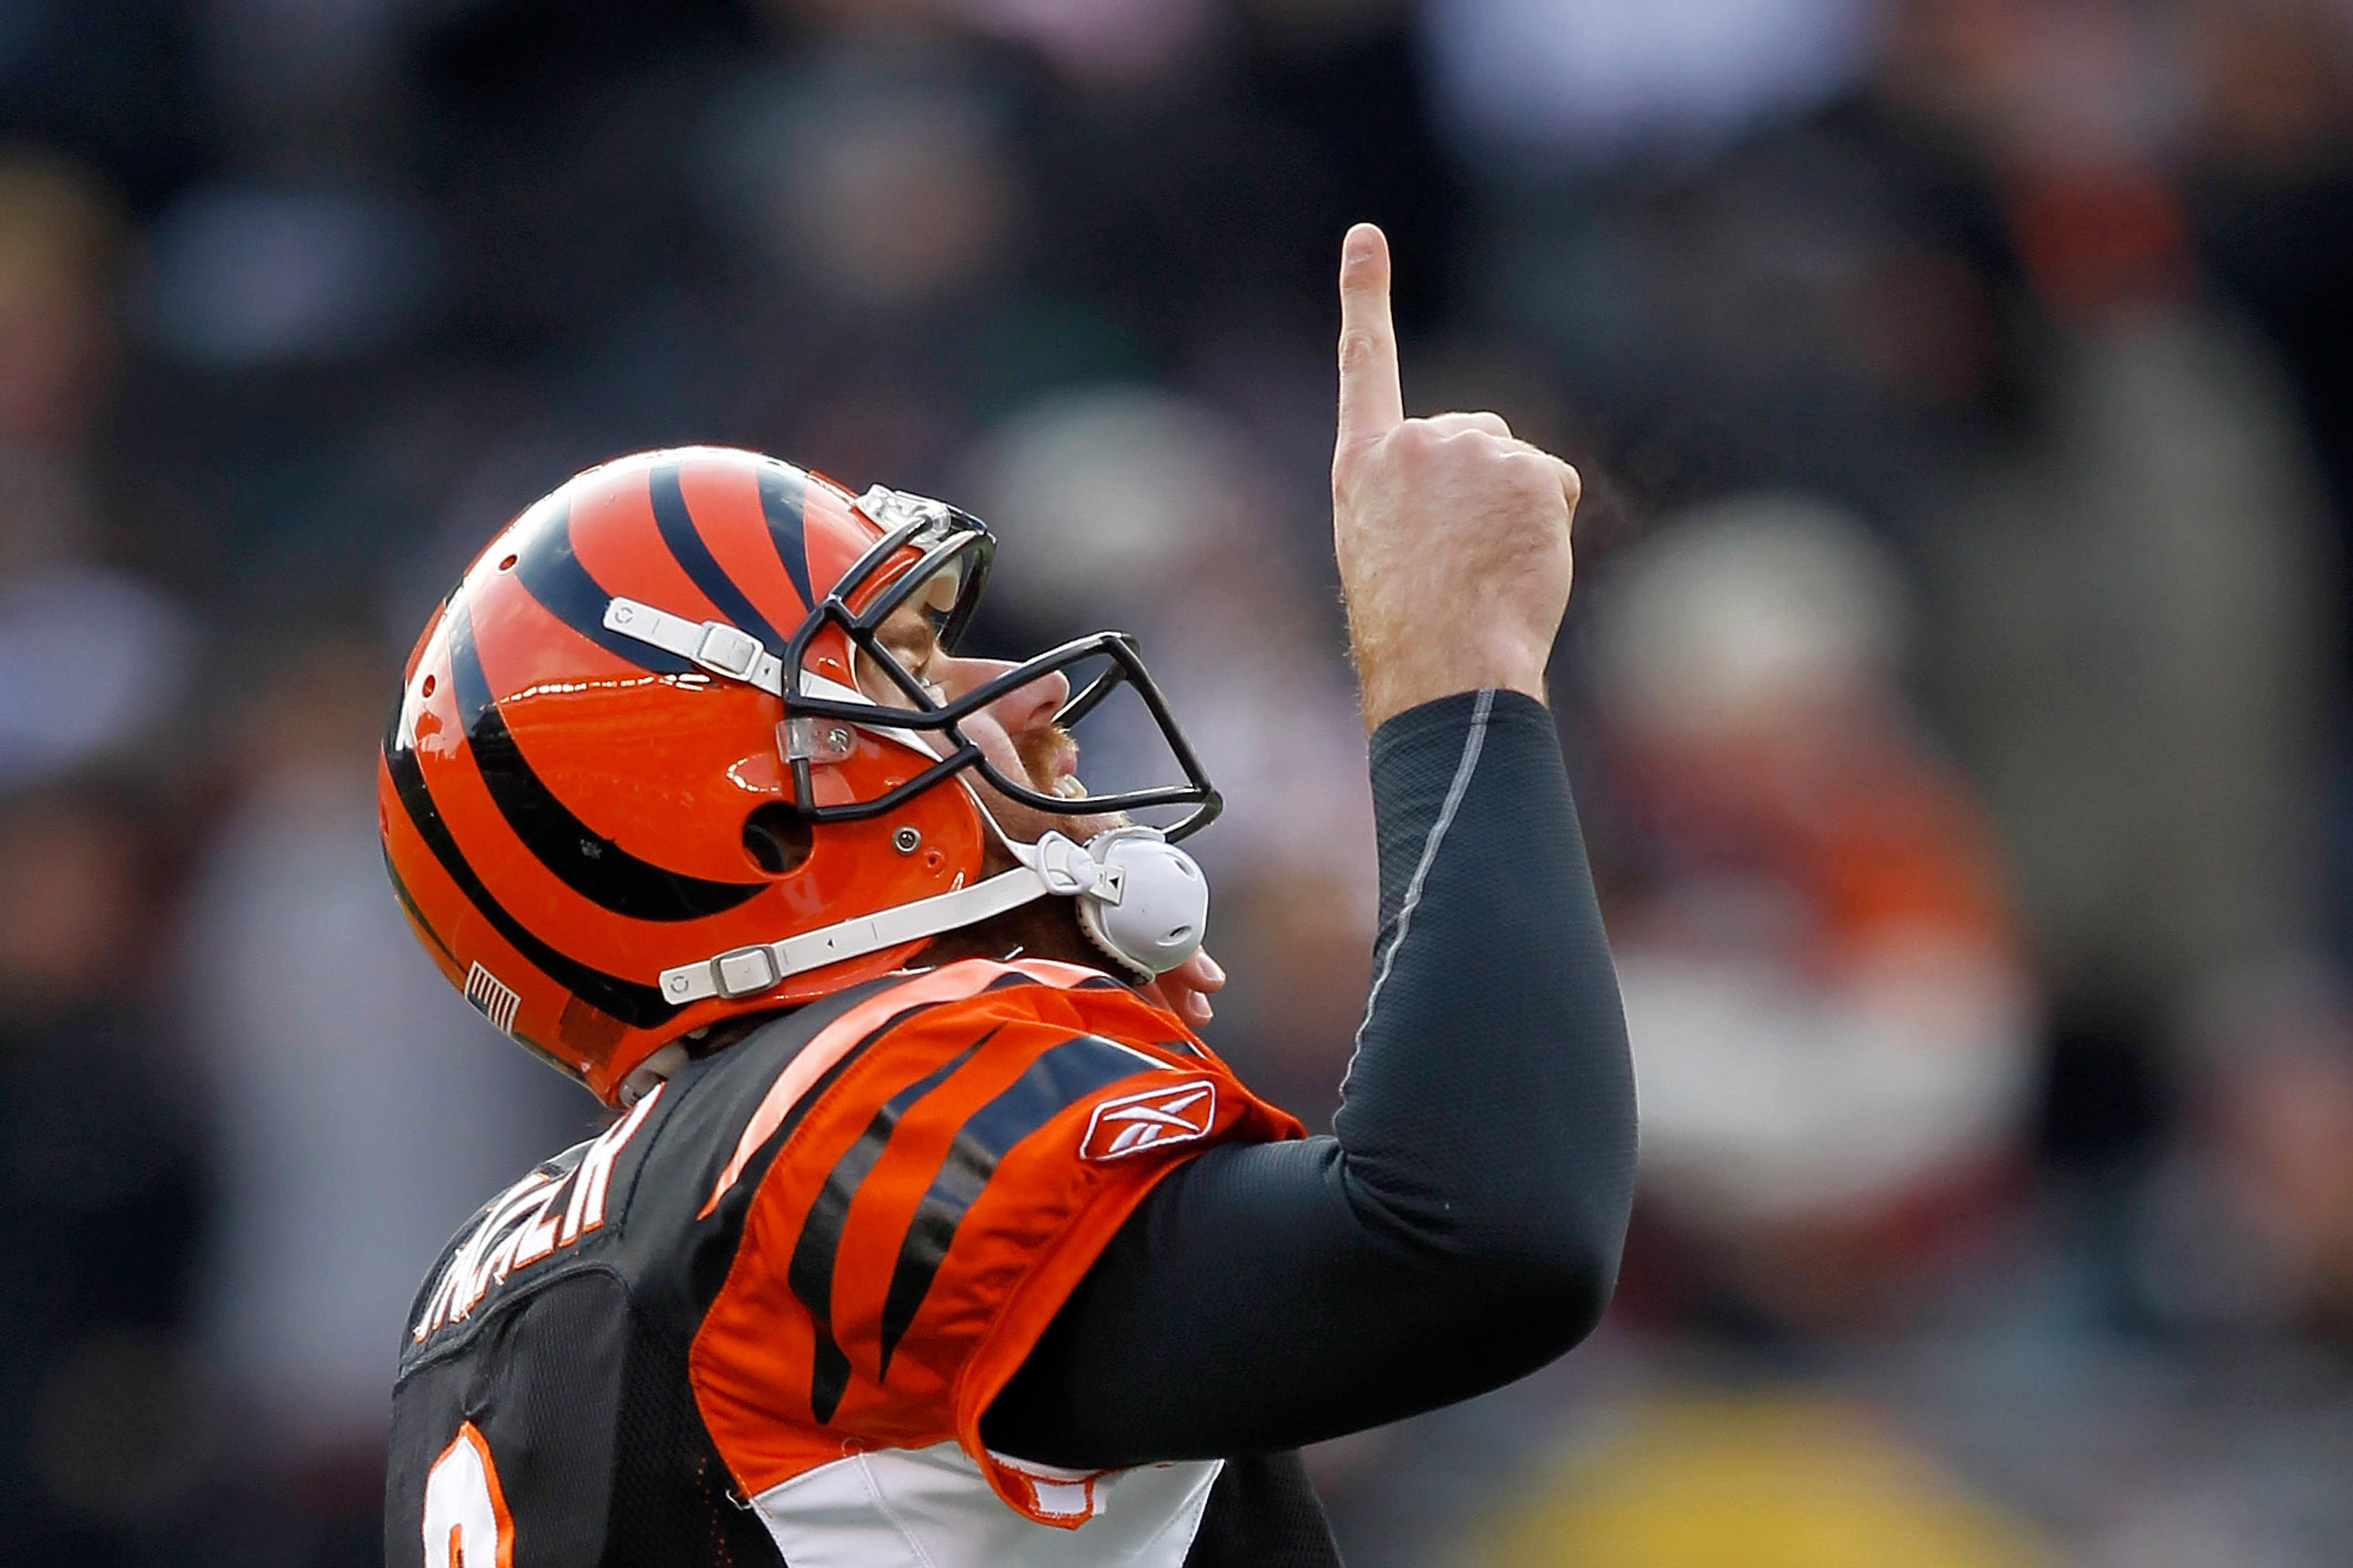 CINCINNATI, OH - DECEMBER 19: Quarterback Carson Palmer #9 of the Cincinnati Bengals celebrates throwing a touchdown against the Cleveland Browns at Paul Brown Stadium on December 19, 2010 in Cincinnati, Ohio.  (Photo by Matthew Stockman/Getty Images)